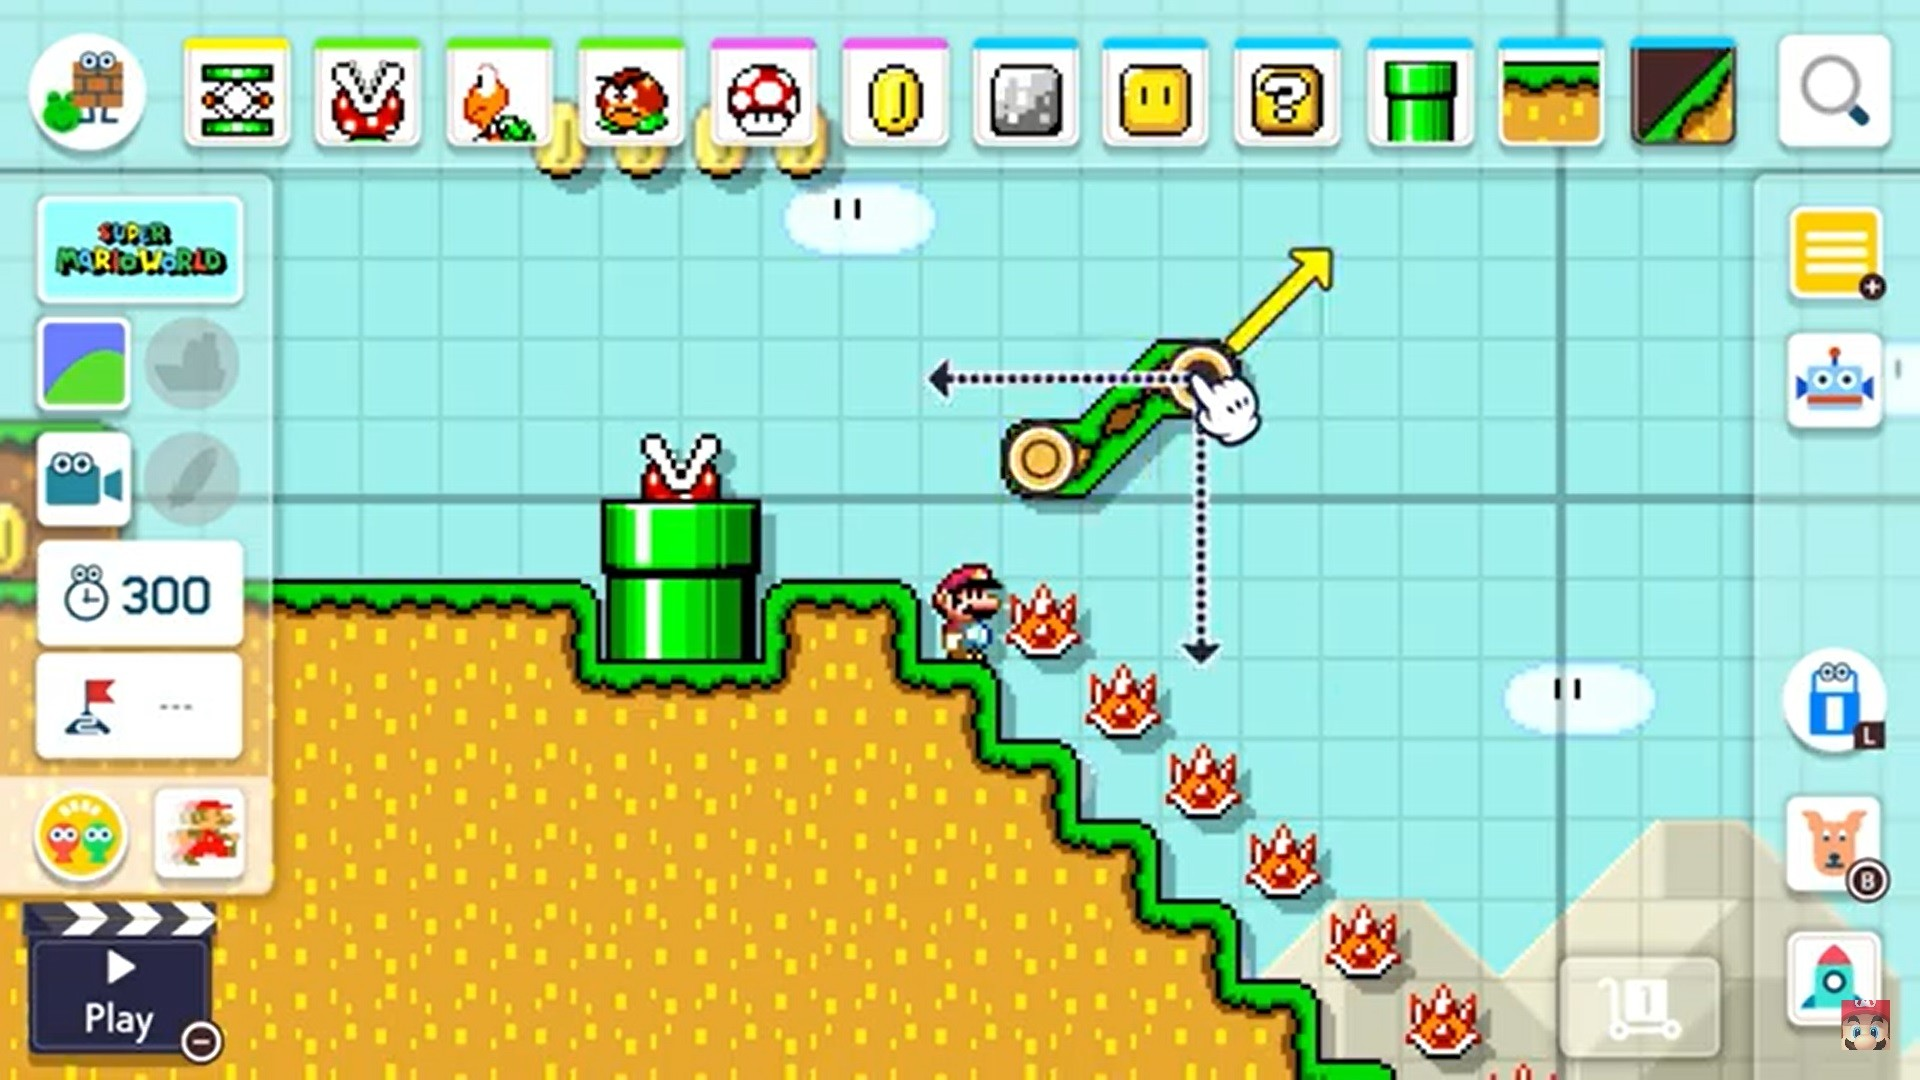 Nintendo Announces Super Mario Maker 2 Coming In June 2019 Neowin